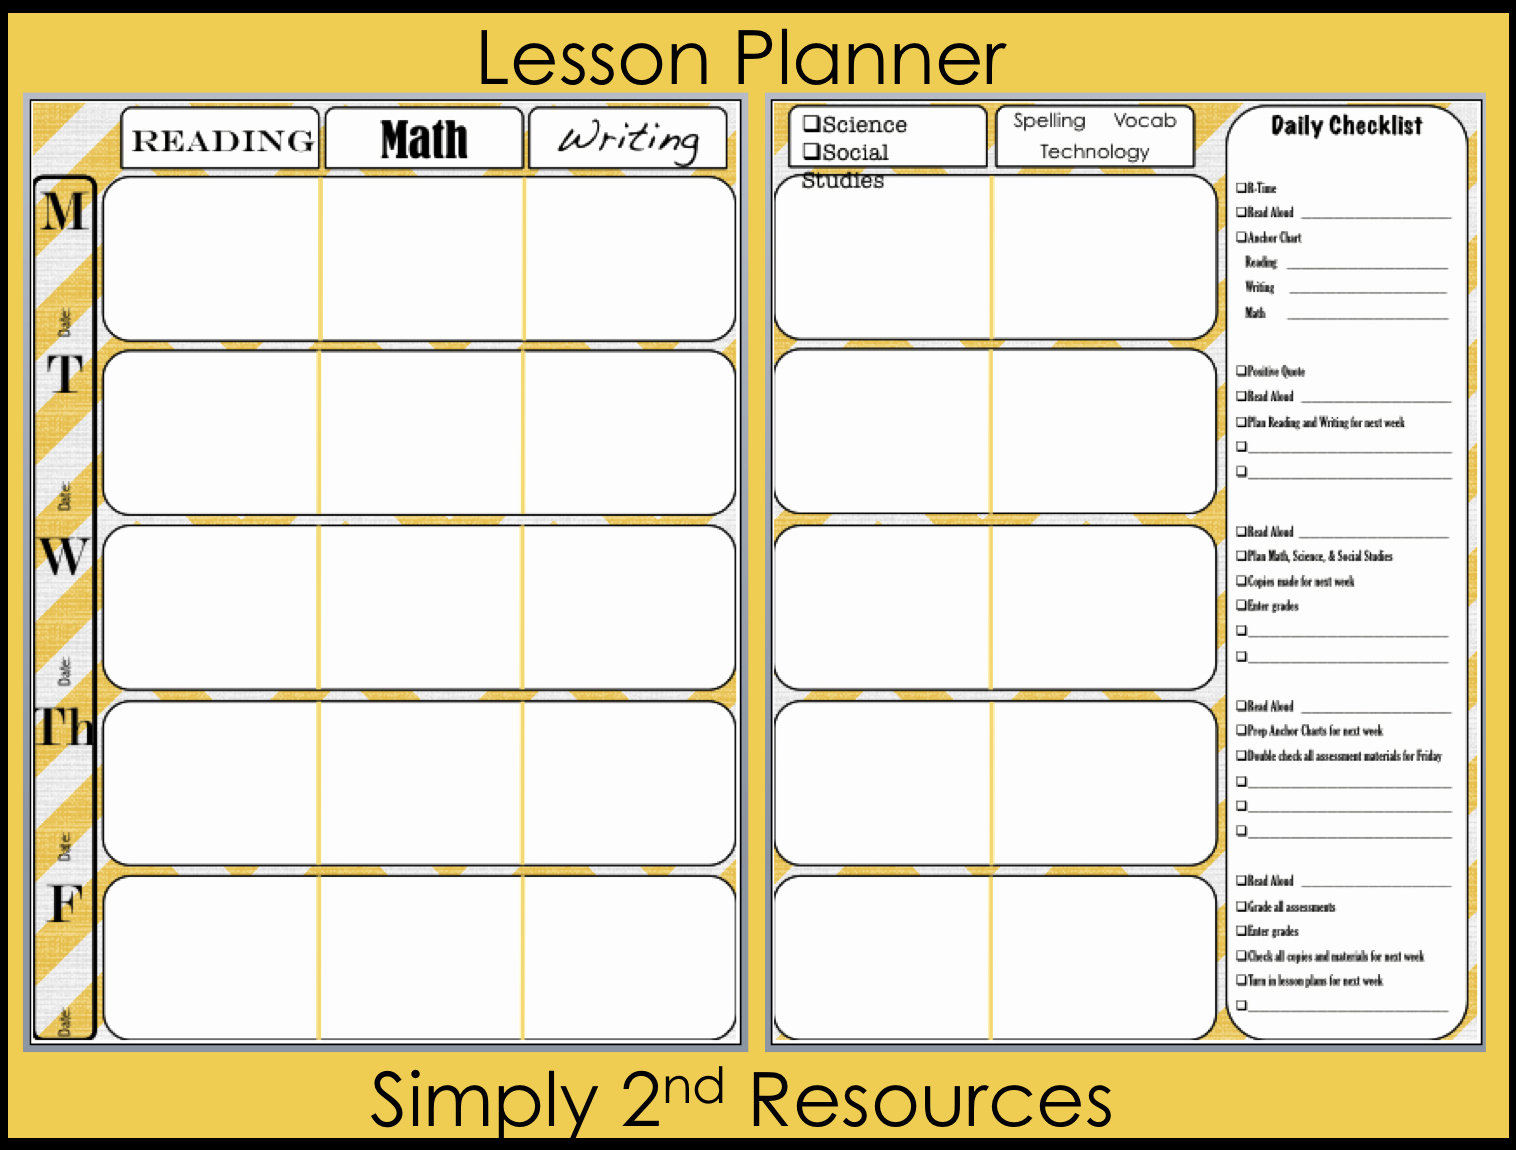 Lesson Plan Calendar Template Best Of Weekly Lesson Plans Template